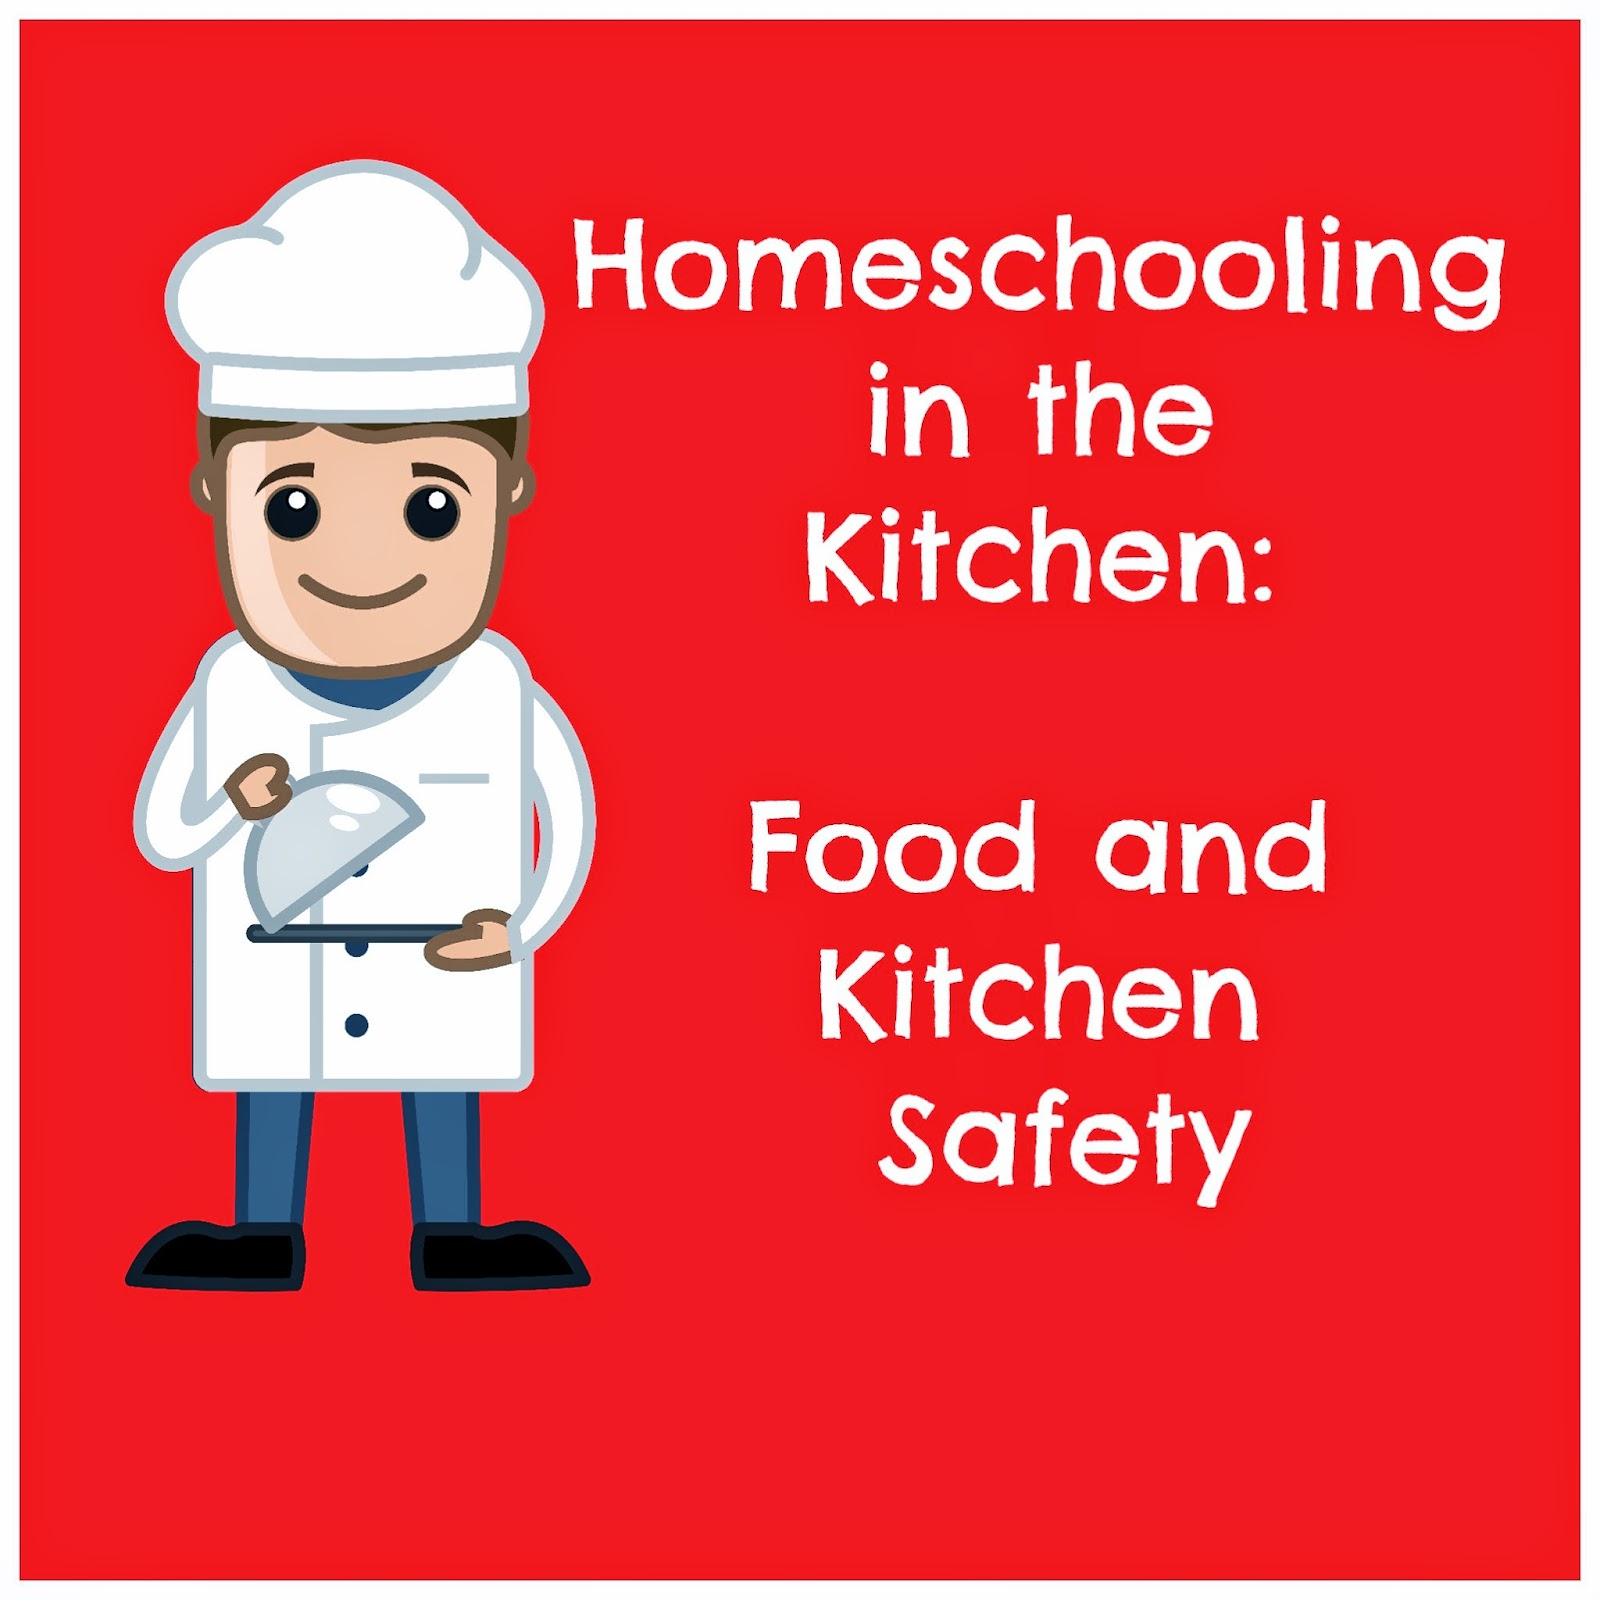 Homeschooling in the Kitchen: Food and Kitchen Safety